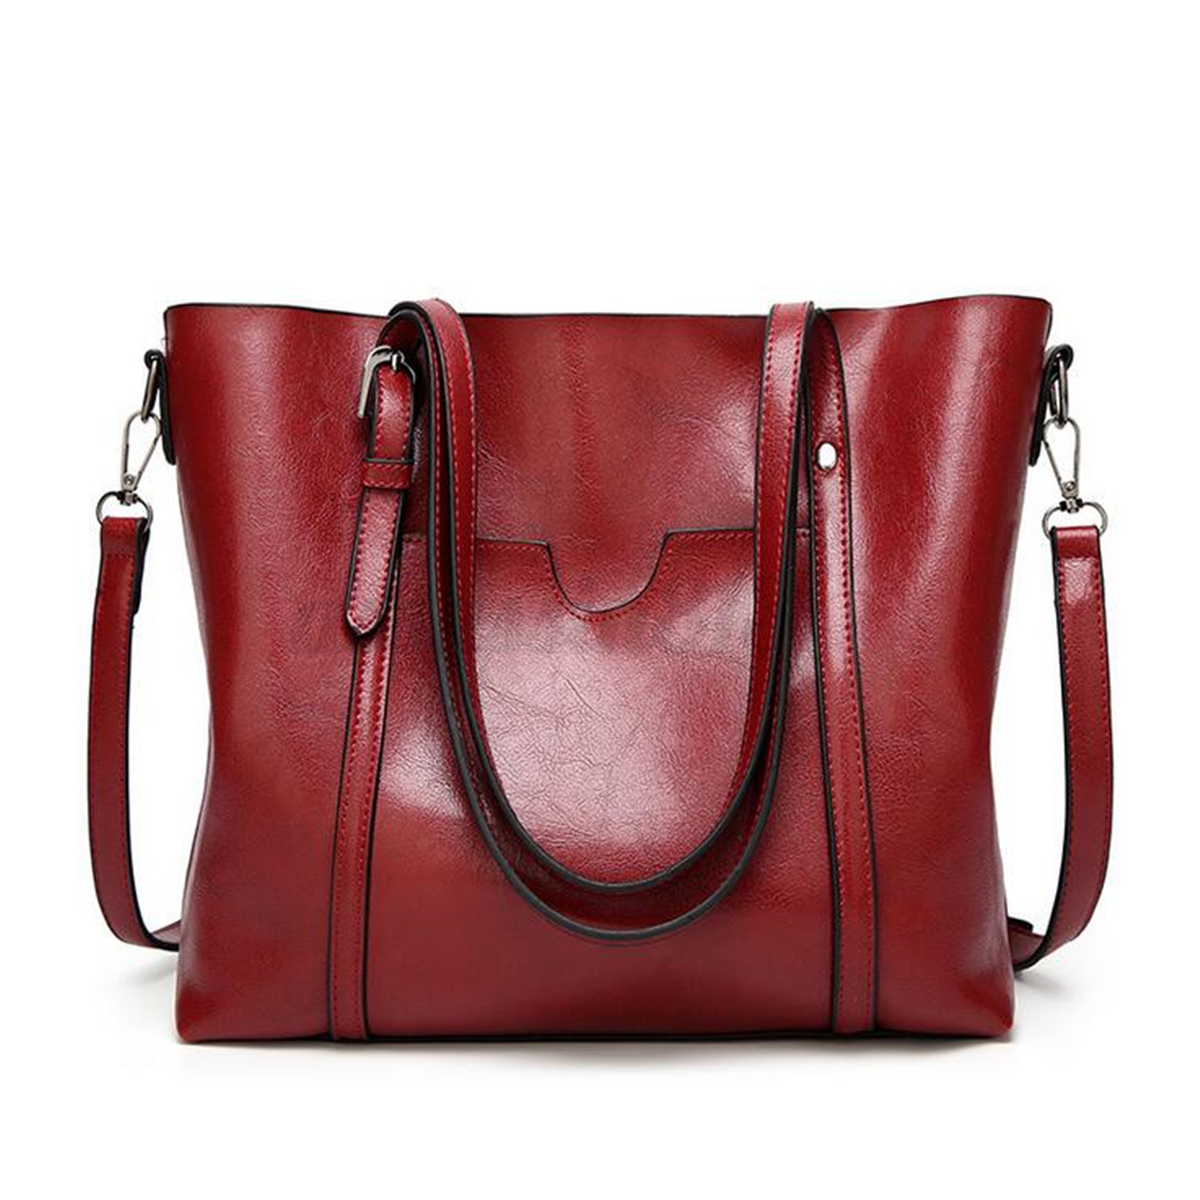 Fashion-Women-Leather-Purse-Lady-Messenger-Handbag-Shoulder-Bag-Tote-Satchel-Hot